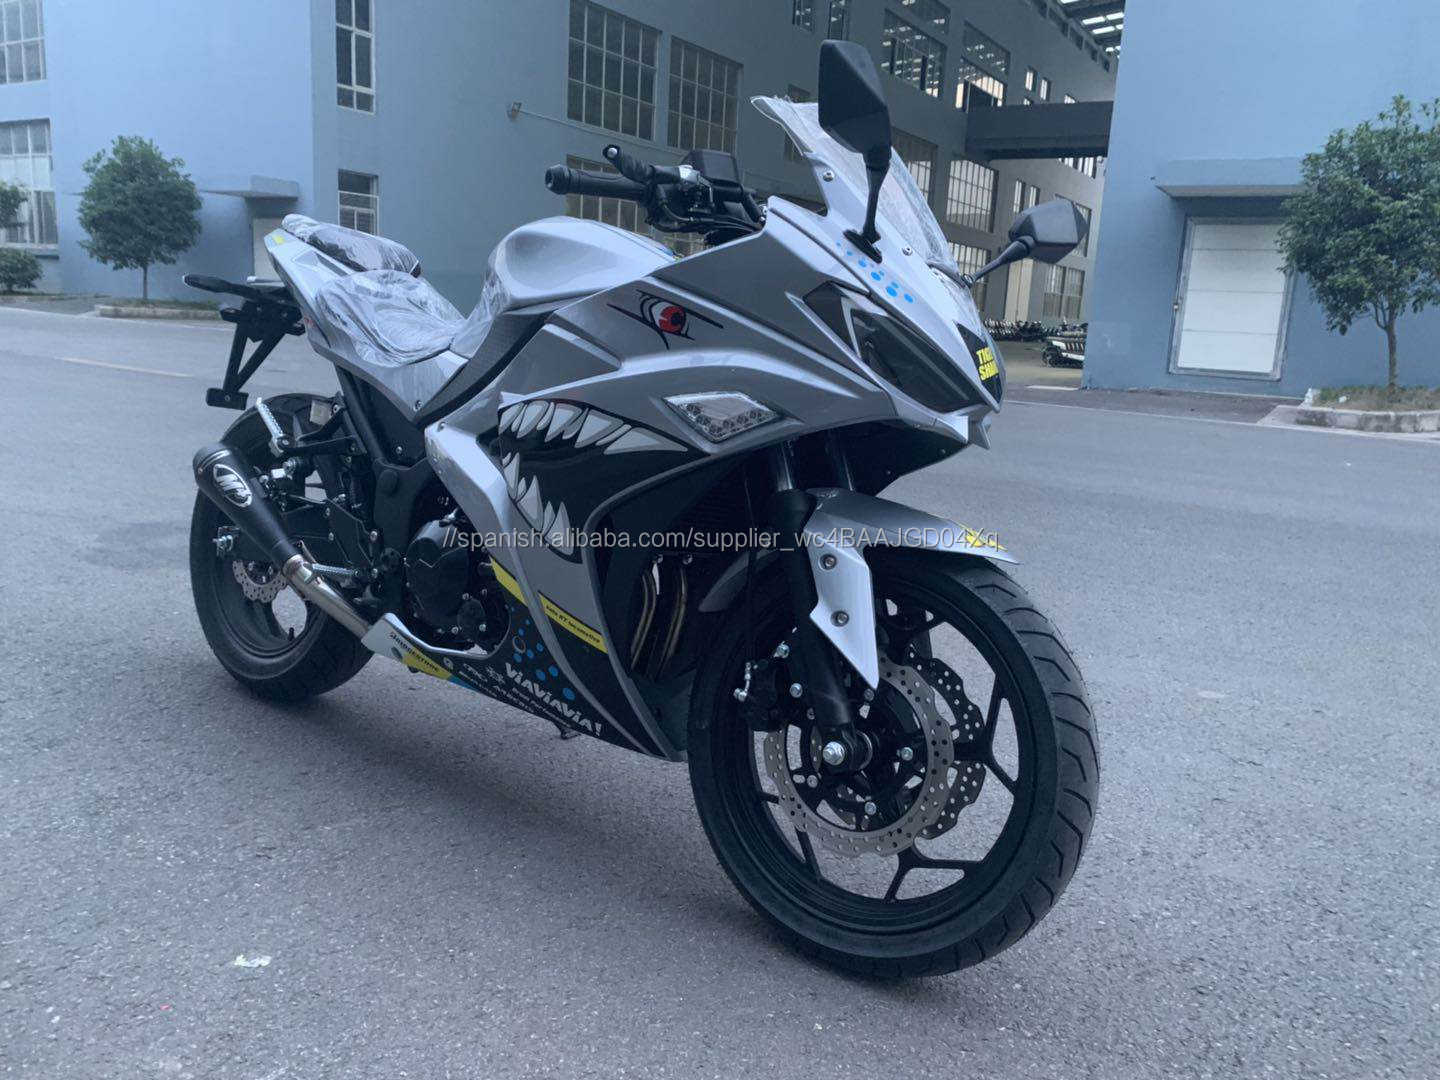 Moto <span class=keywords><strong>scooter</strong></span> V6 <span class=keywords><strong>150cc</strong></span> 200cc <span class=keywords><strong>250cc</strong></span> 400cc